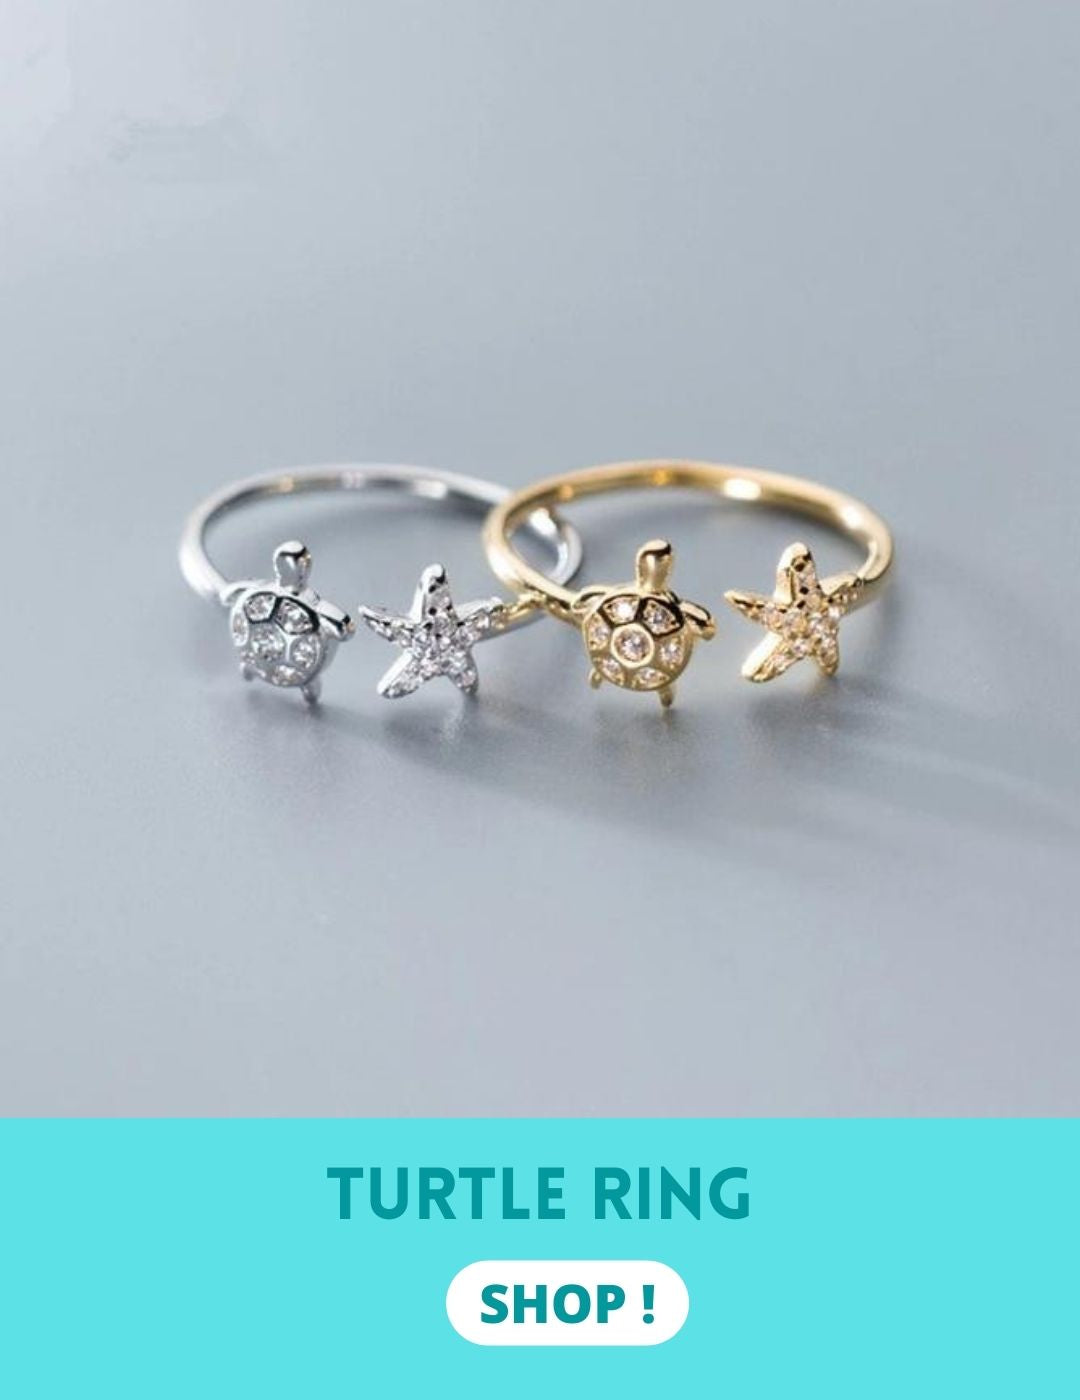 Turtle ring meaning